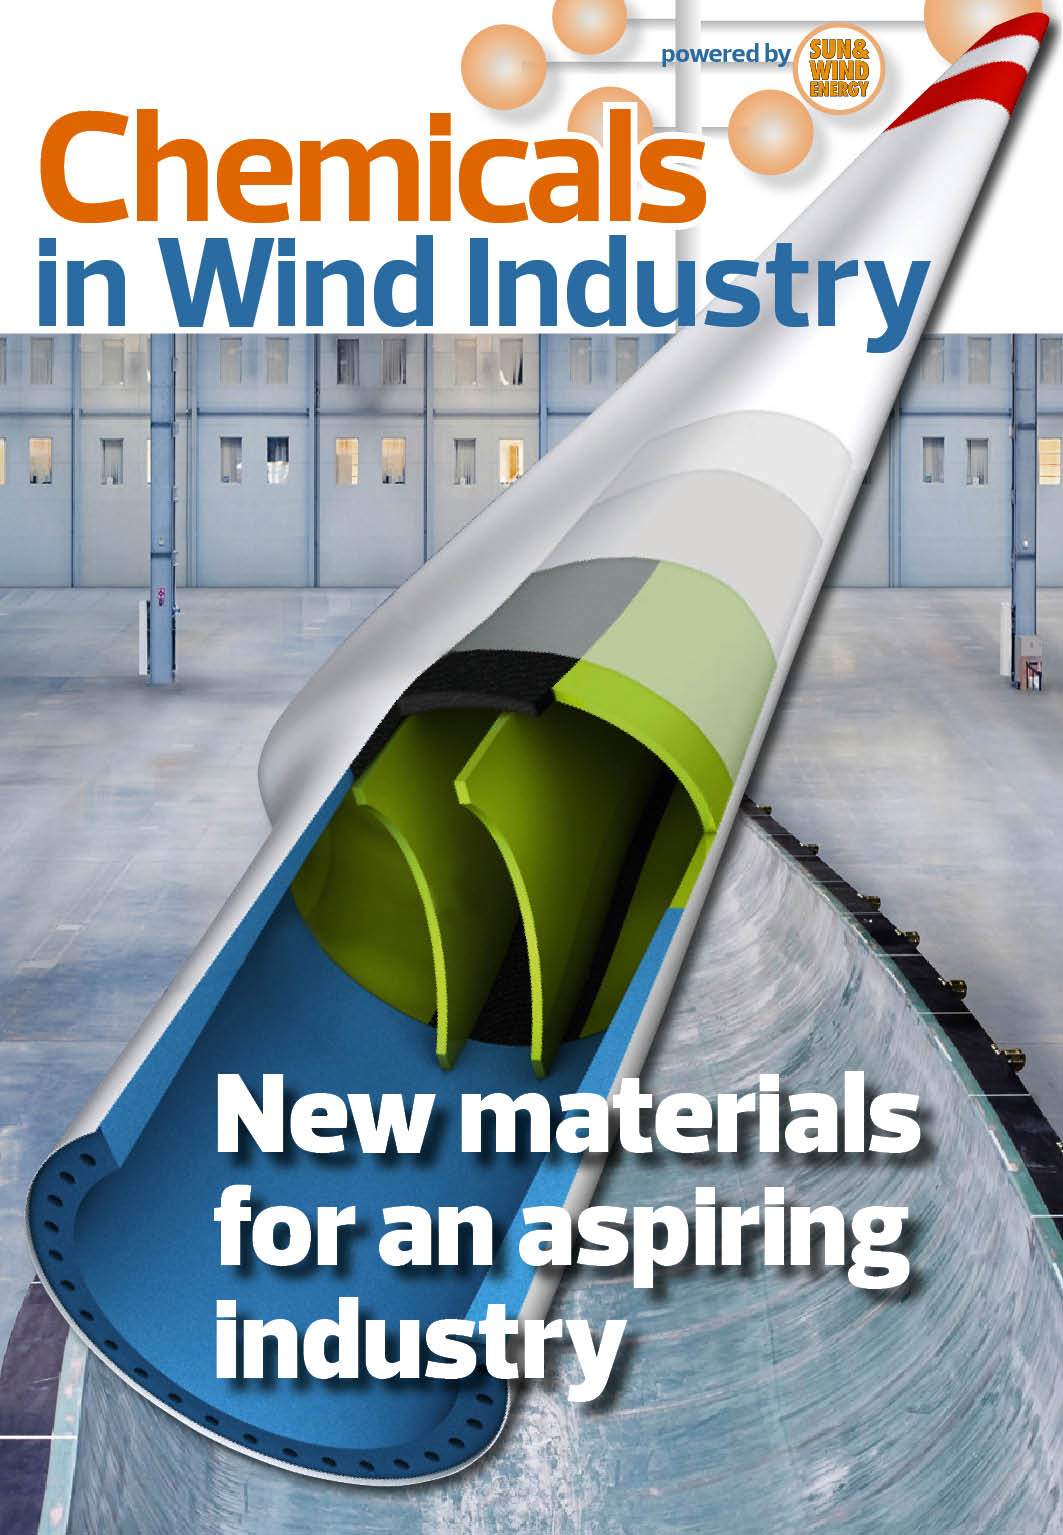 CHEMICALS IN WIND INDUSTRY issue preview